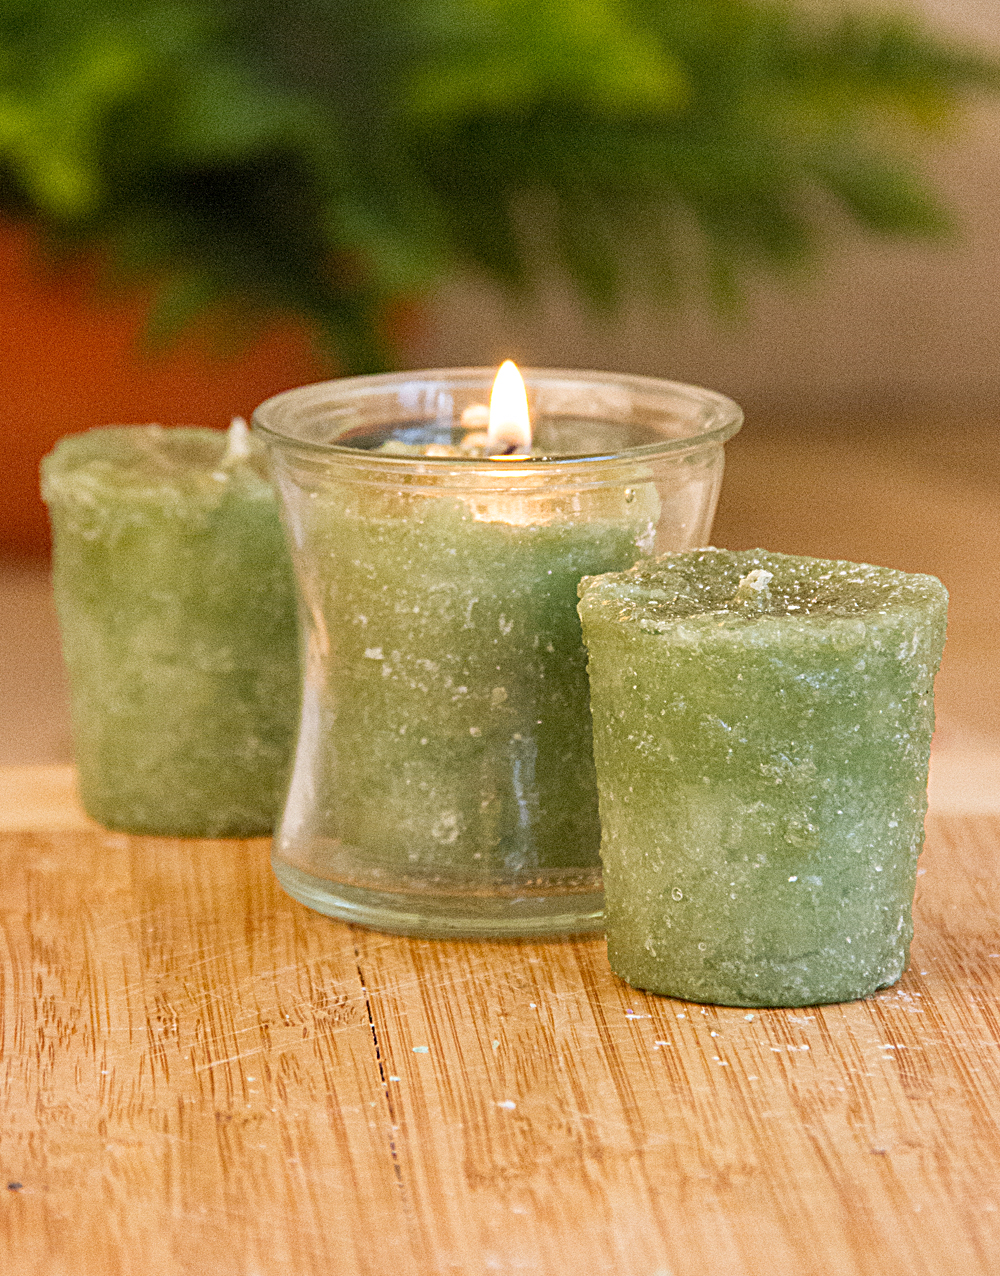 Patchouli & Spice 3 Pack Votive Candles